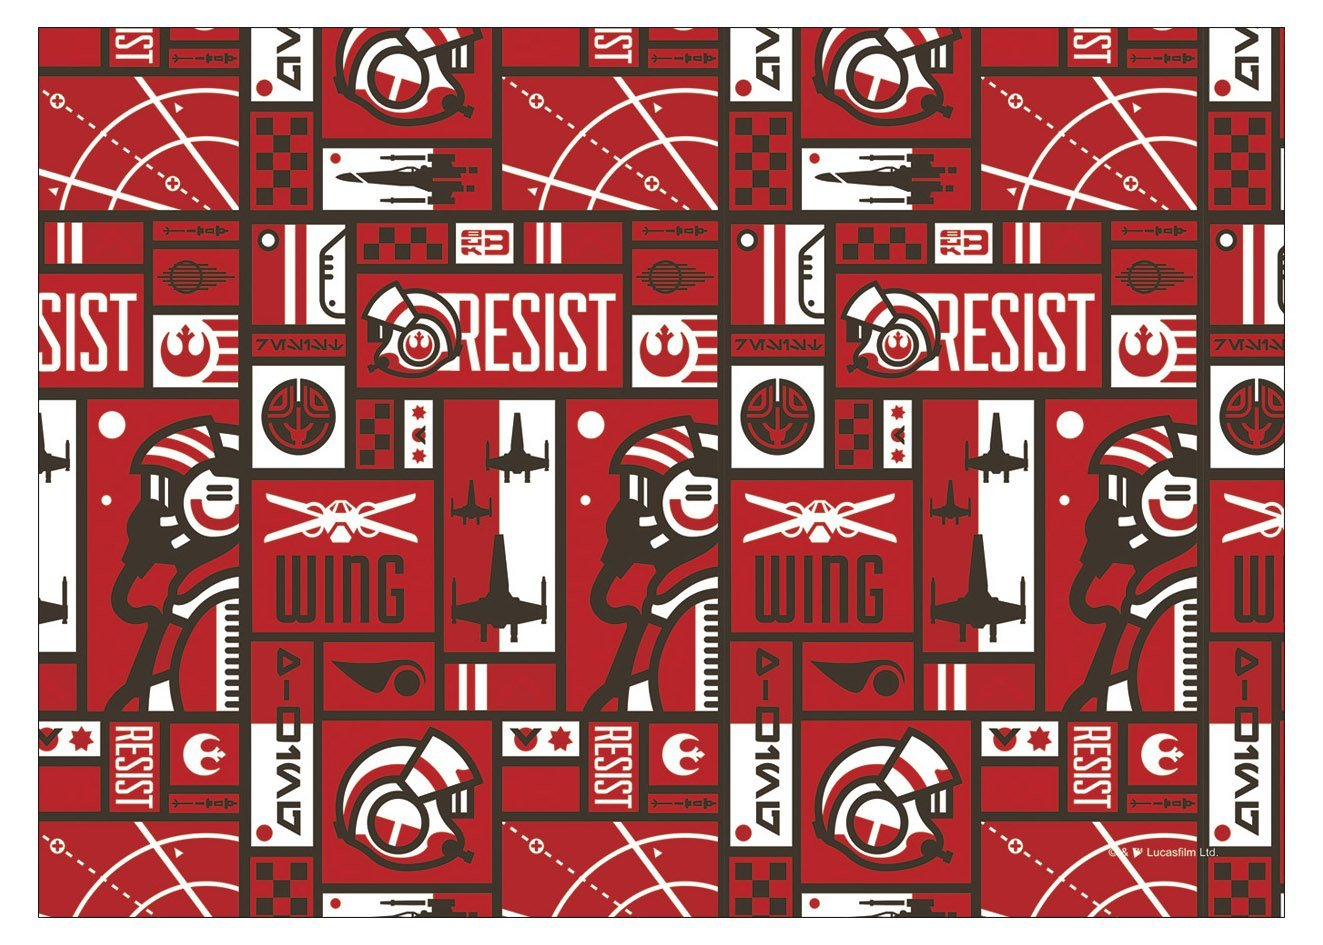 TLJ Resistance Pattern Laptop Wrap 2